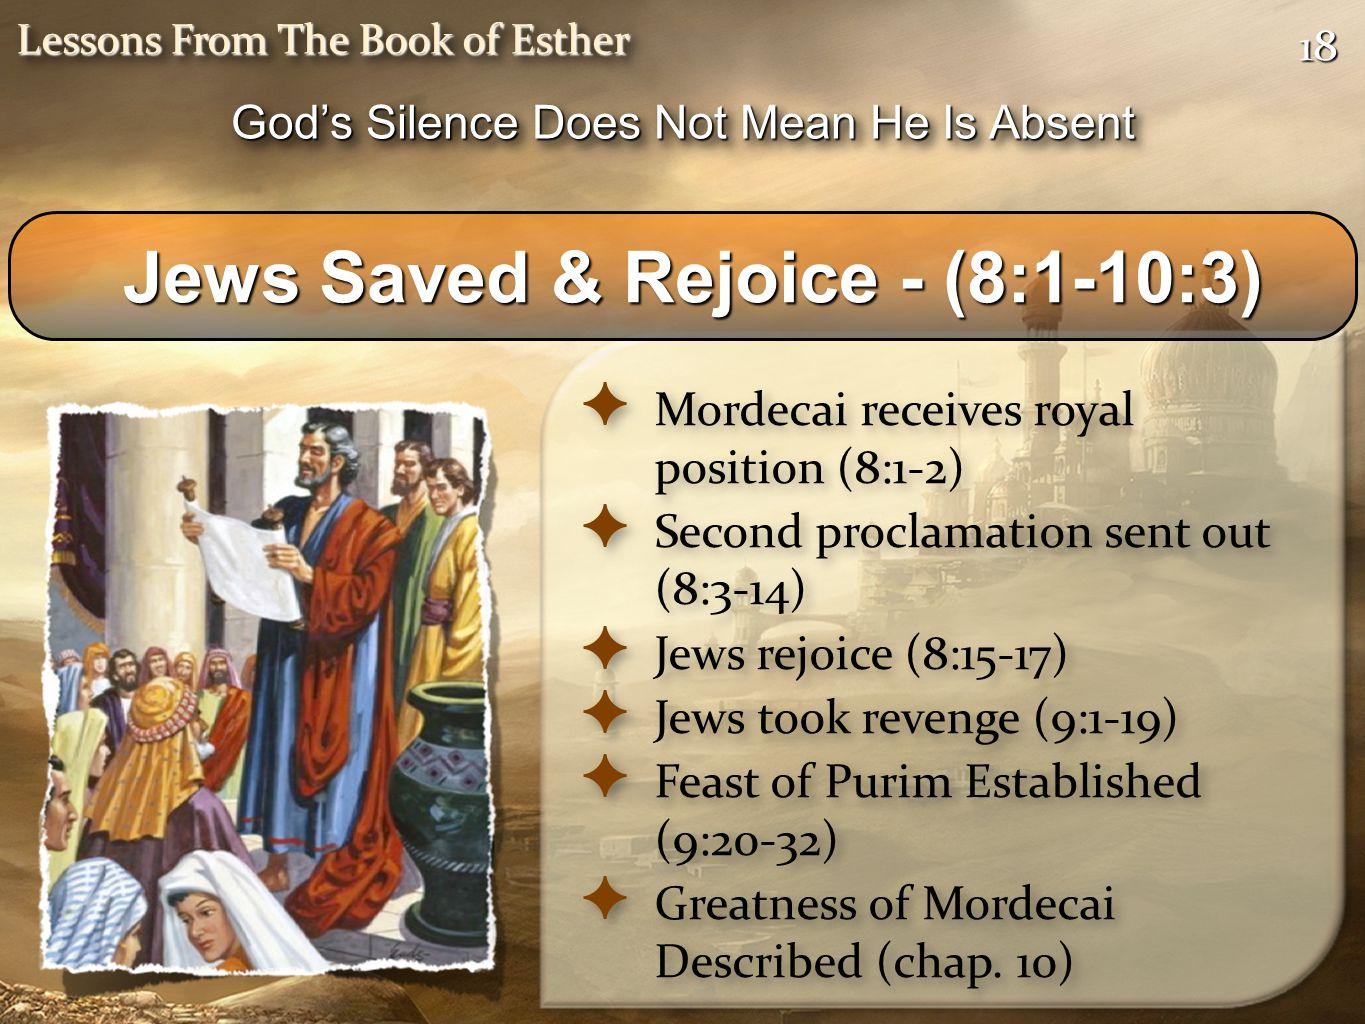 1818 Lessons From The Book of Esther ✦ Mordecai receives royal position (8:1-2) ✦ Second proclamation sent out (8:3-14) ✦ Jews rejoice (8:15-17) ✦ Jew